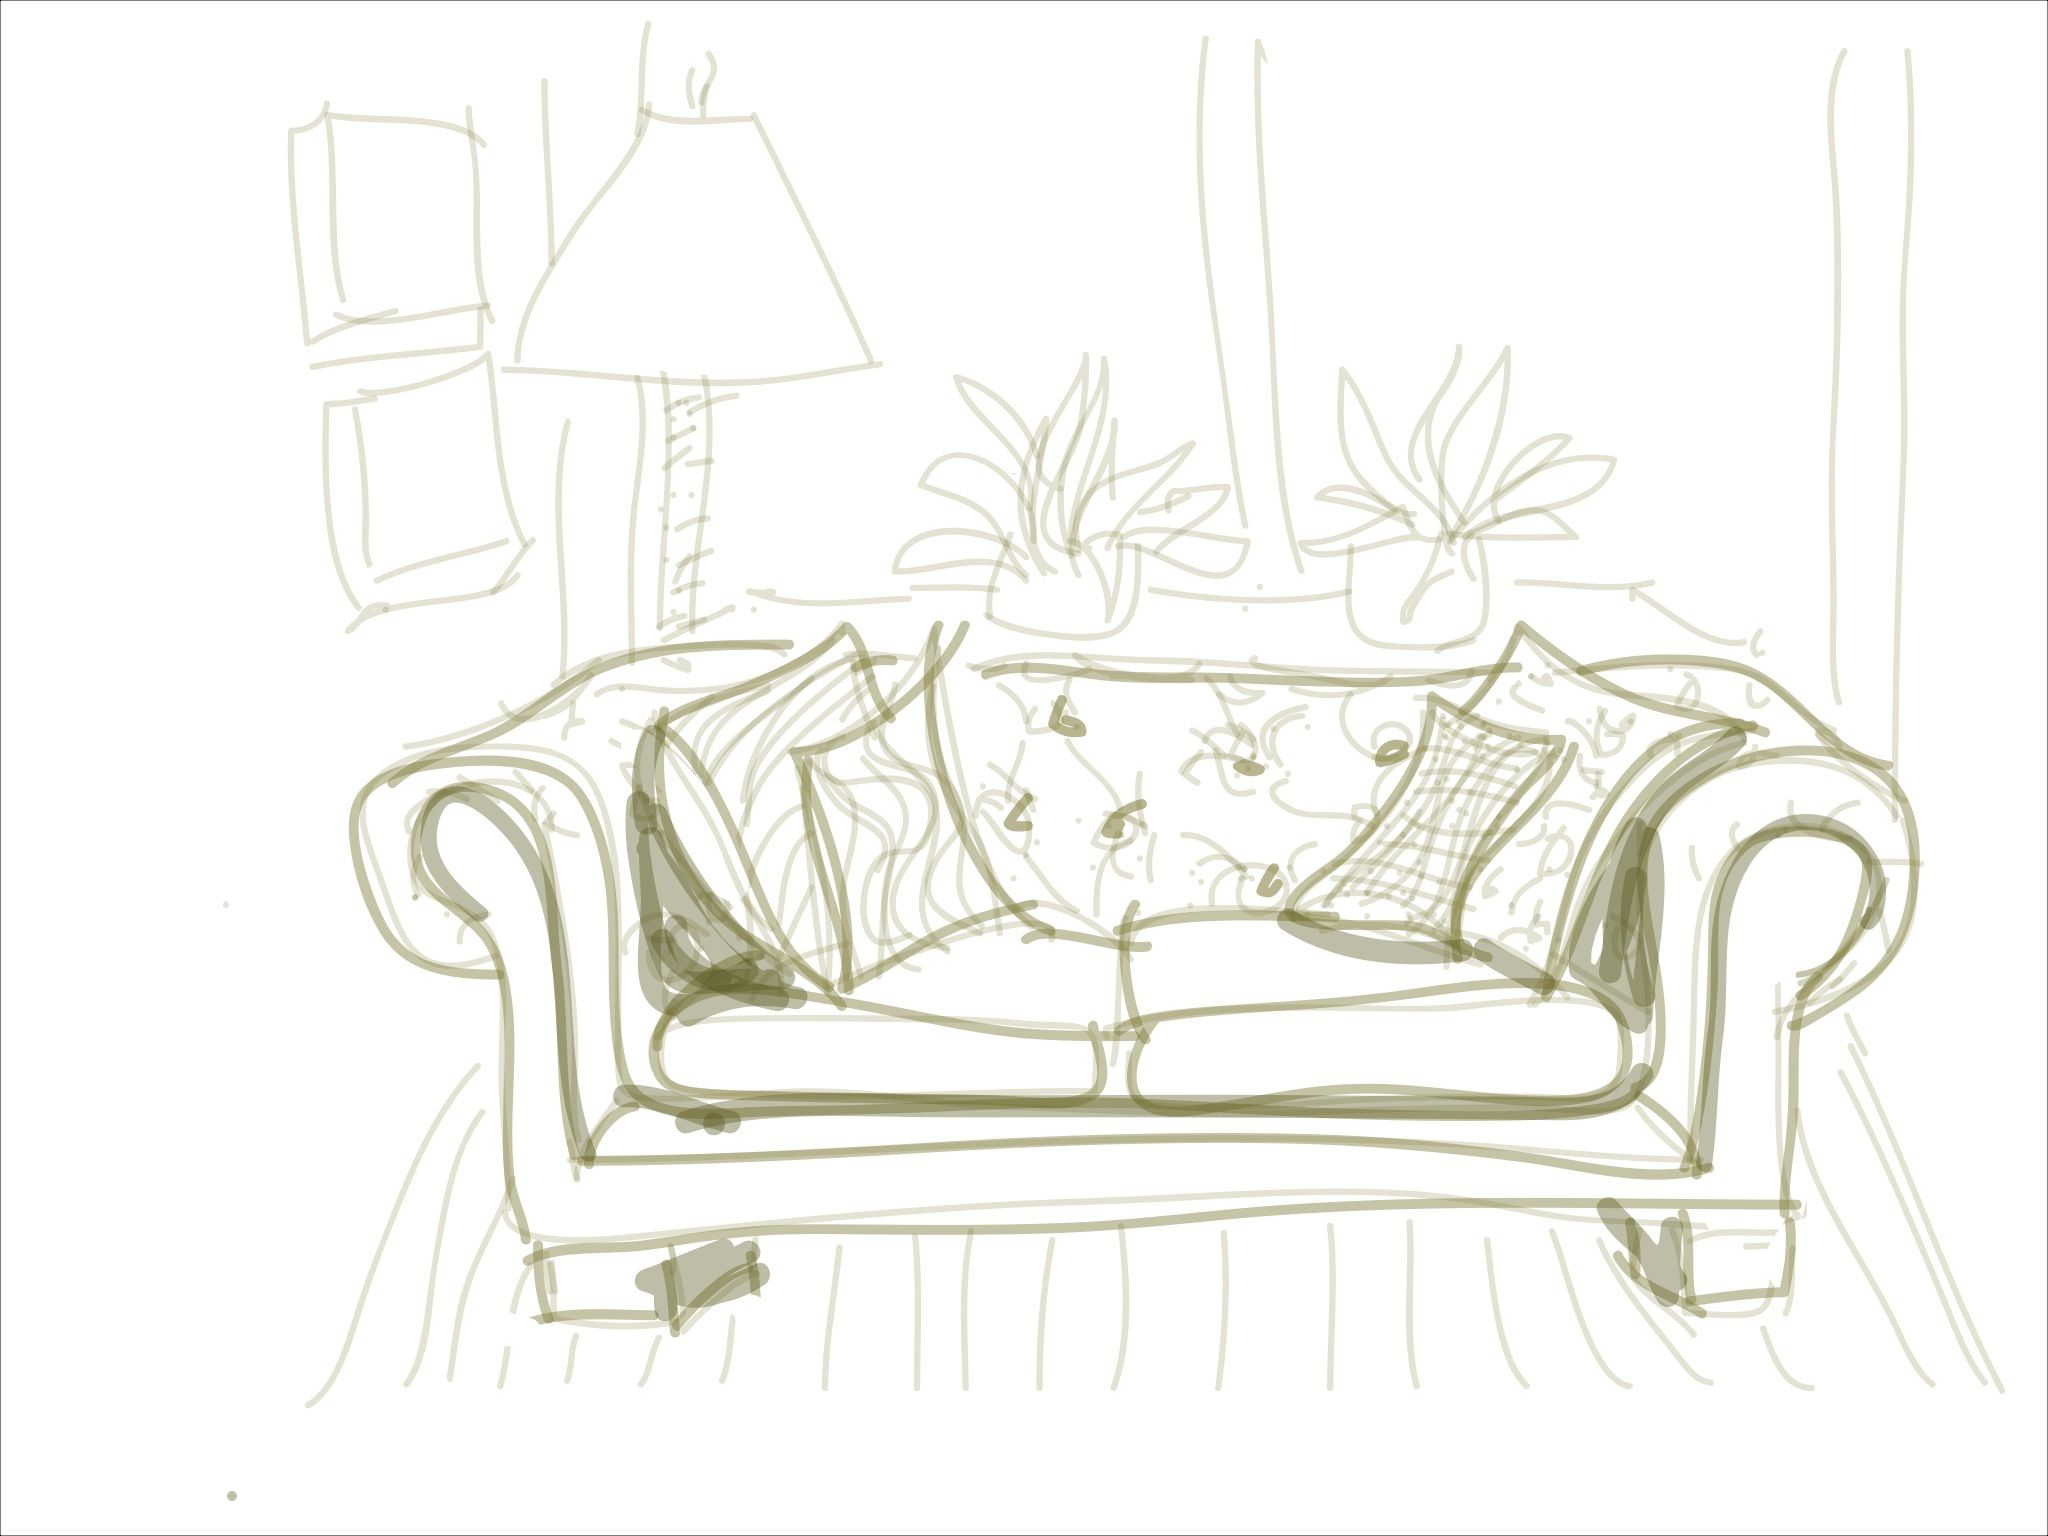 Couch Drawing steps to sofa drawing on ipad. | ipad drawings | pinterest